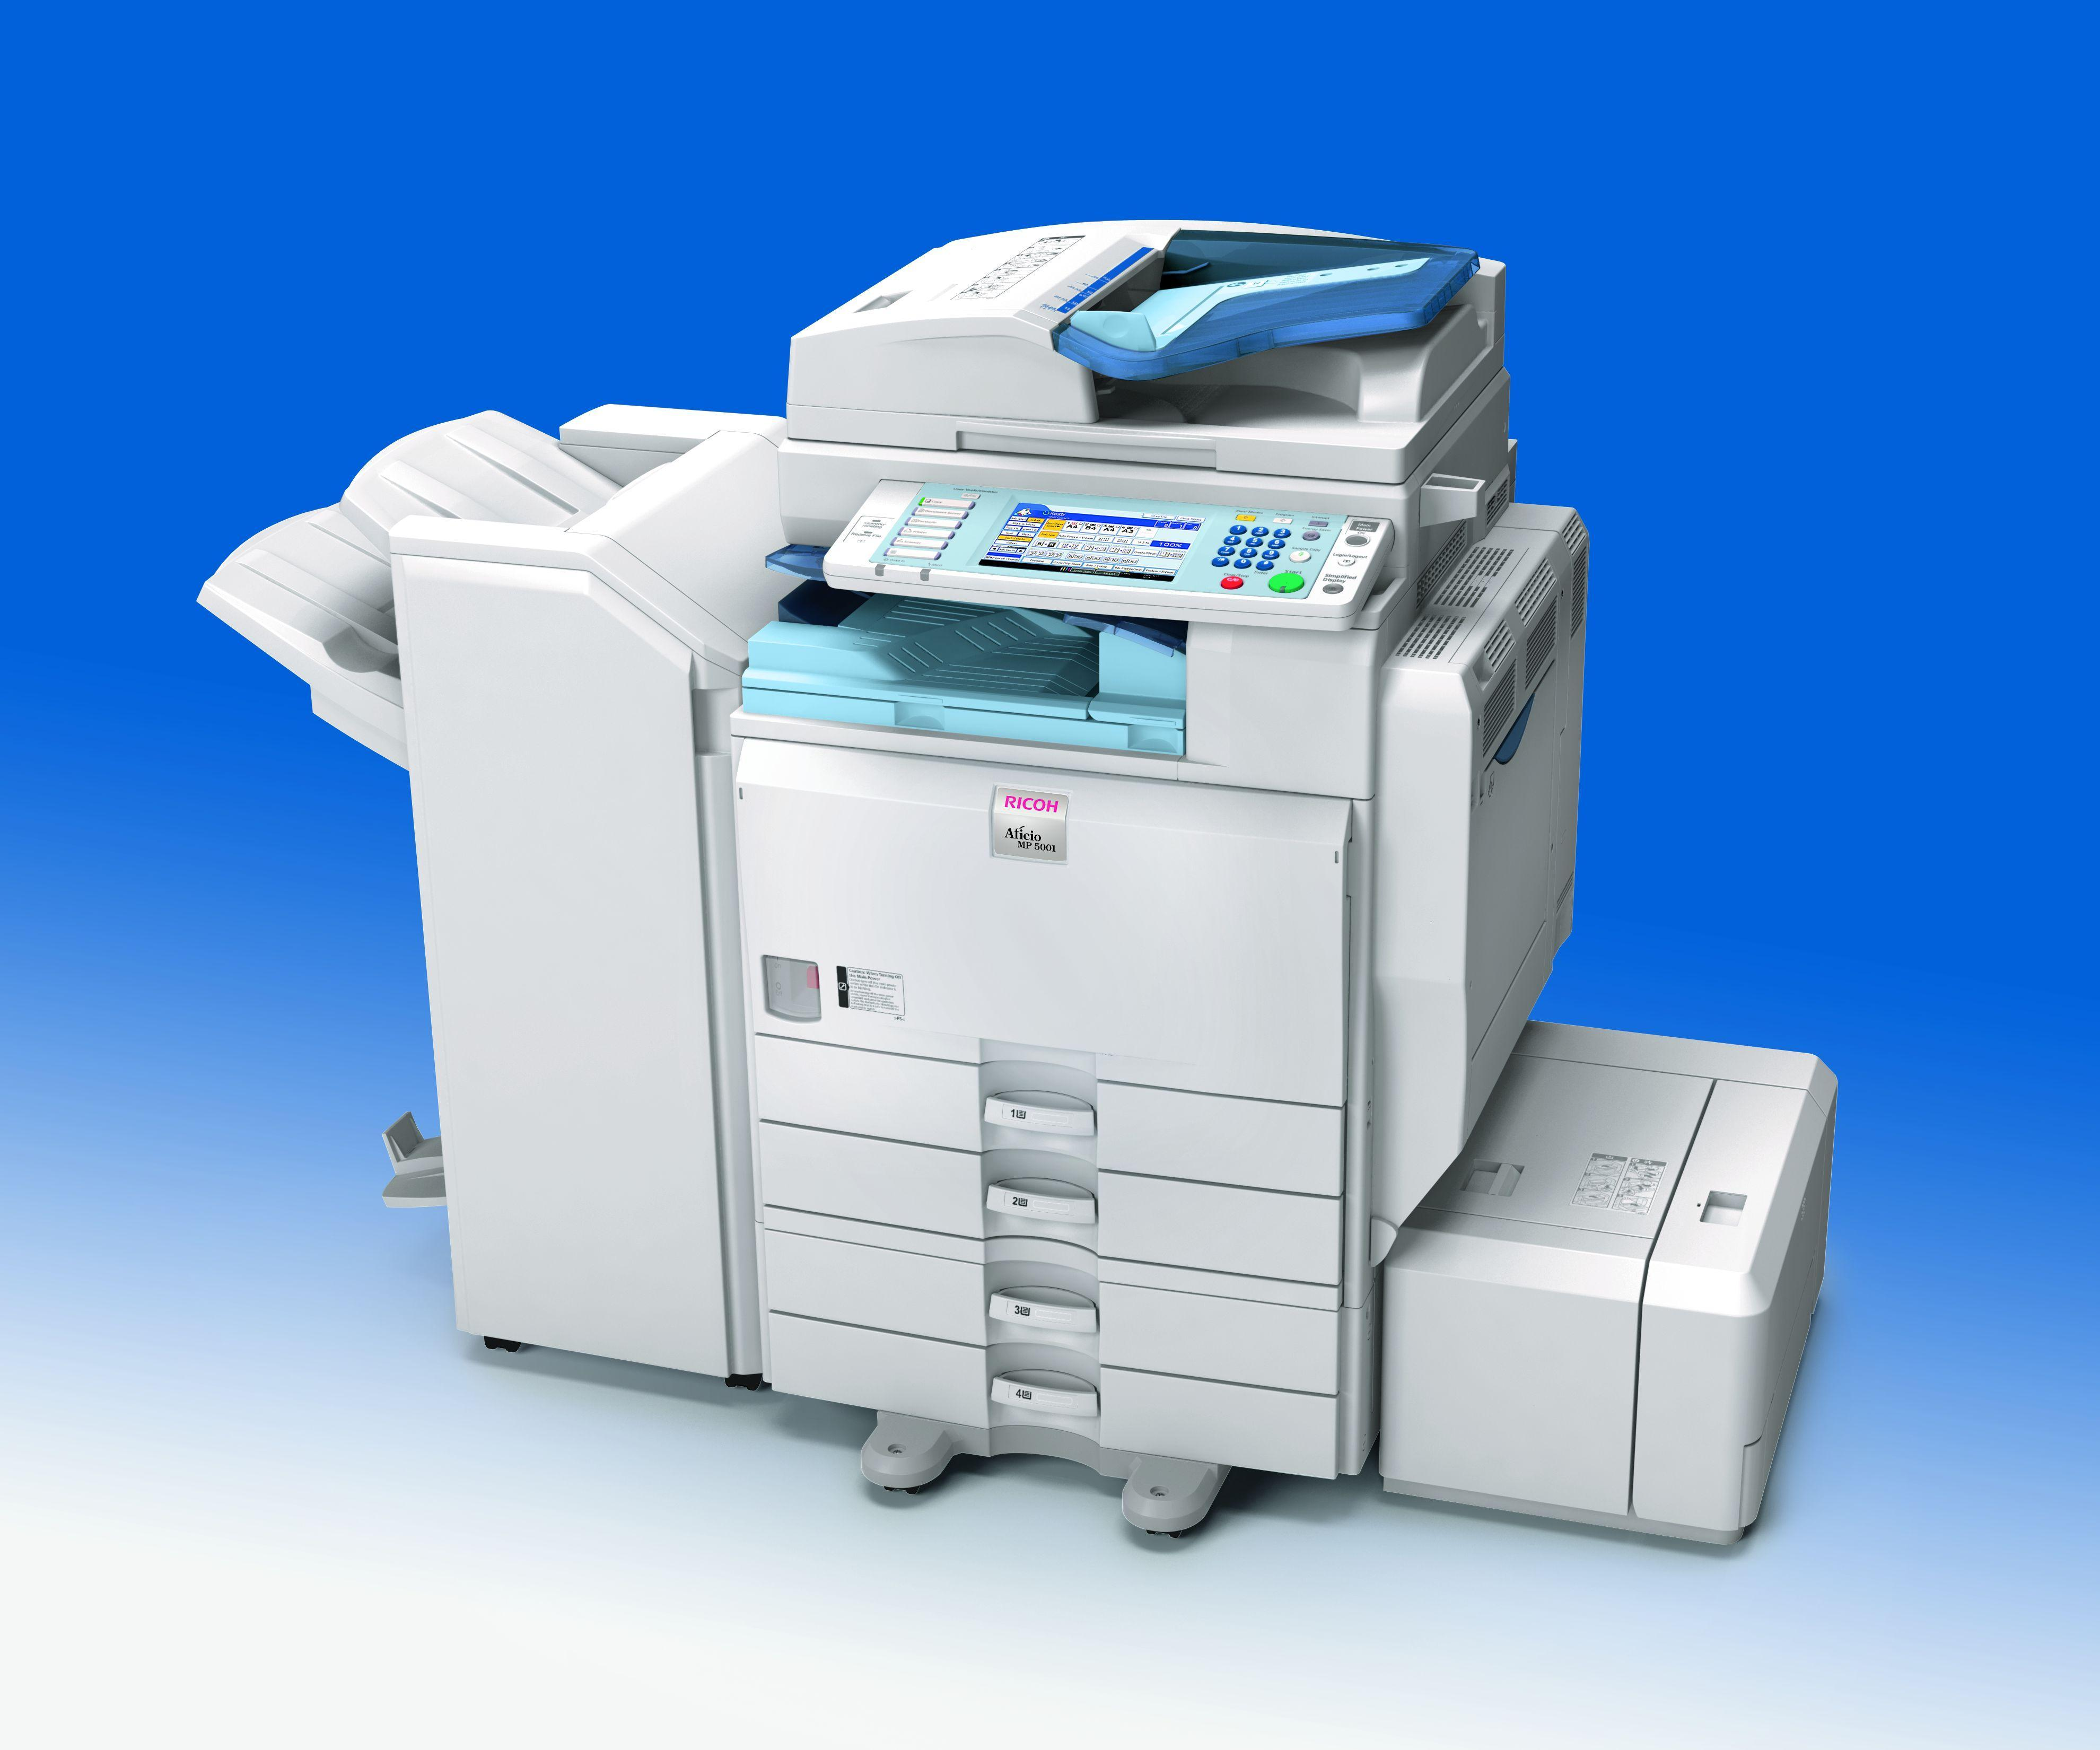 RICOH AFICIO MP 4001 PCL 6 DRIVER DOWNLOAD